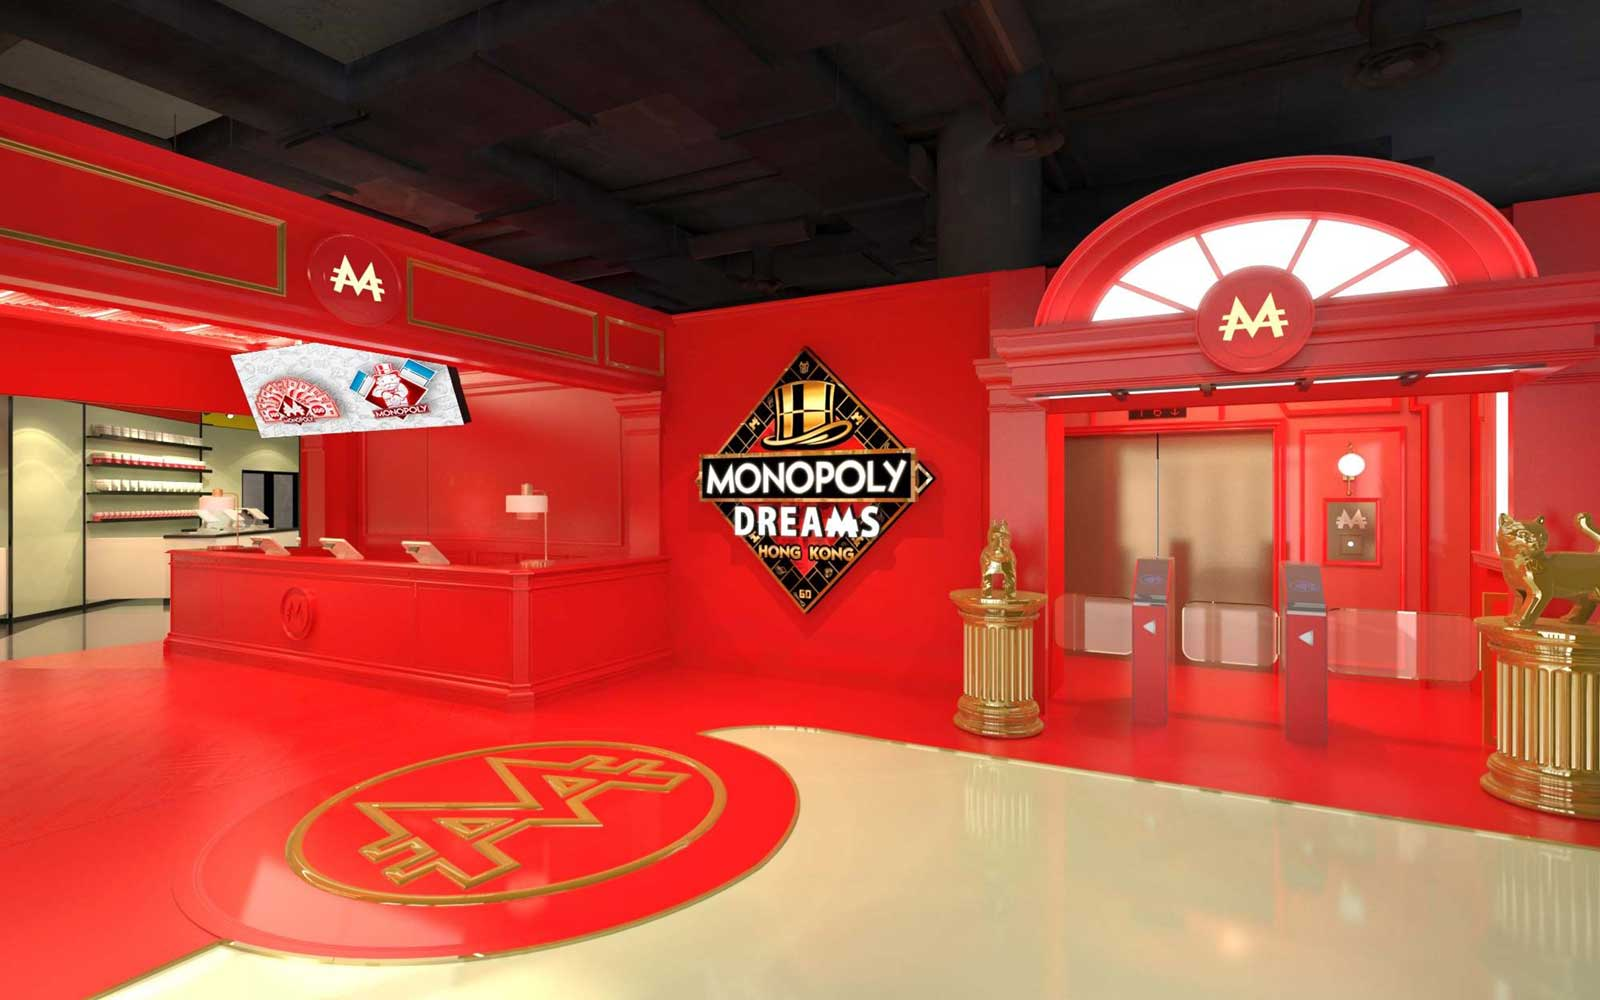 Hong Kong's New Life-size Monopoly Game Will Make All Your Childhood Dreams Come True